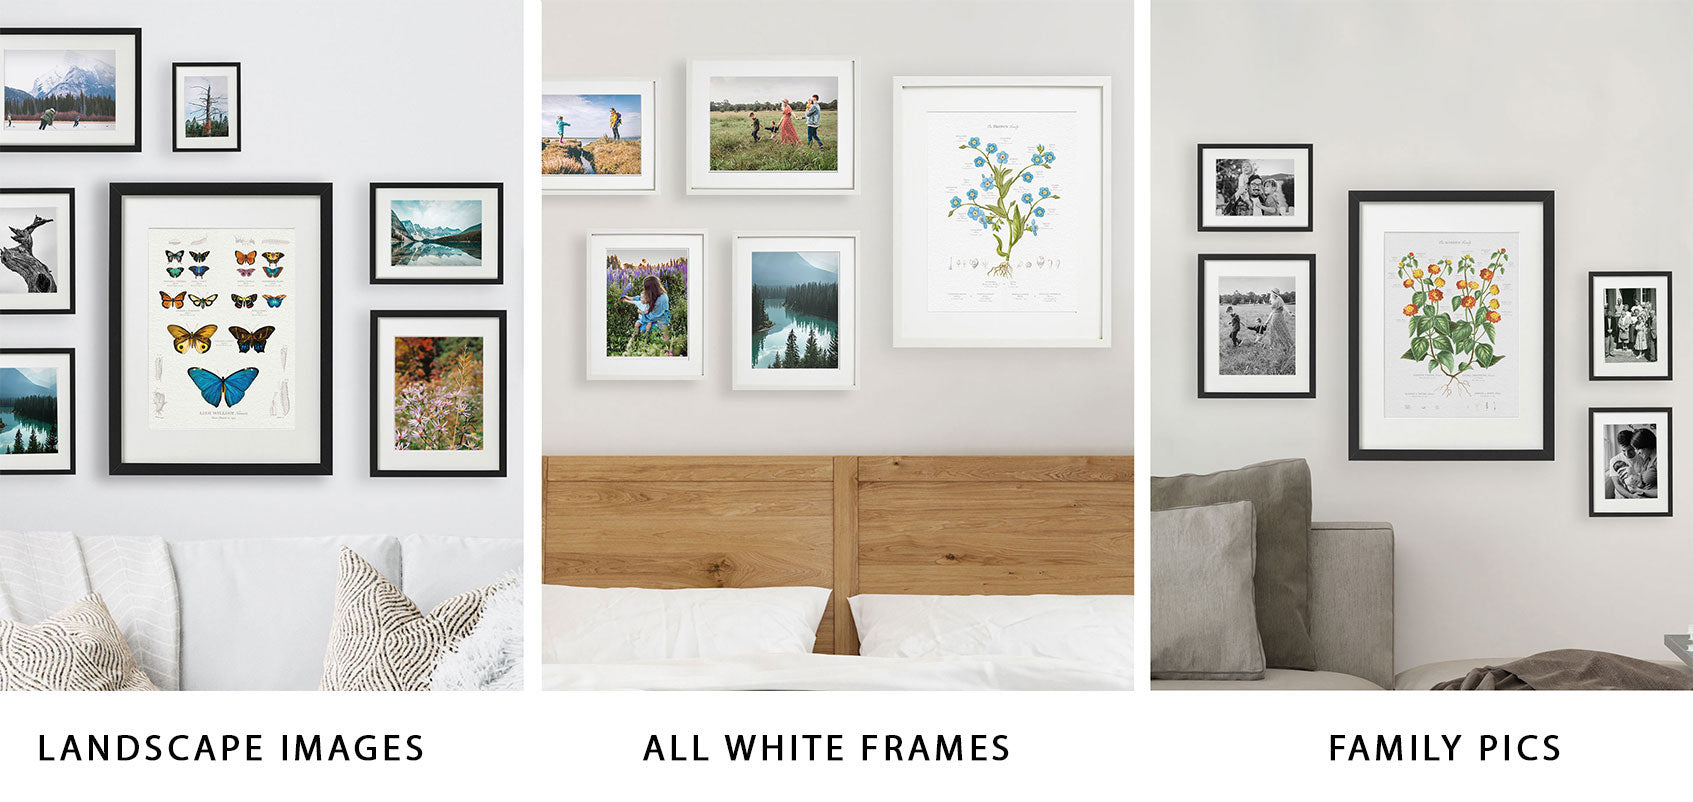 Gallery Wall with Landscape Images Family Photos